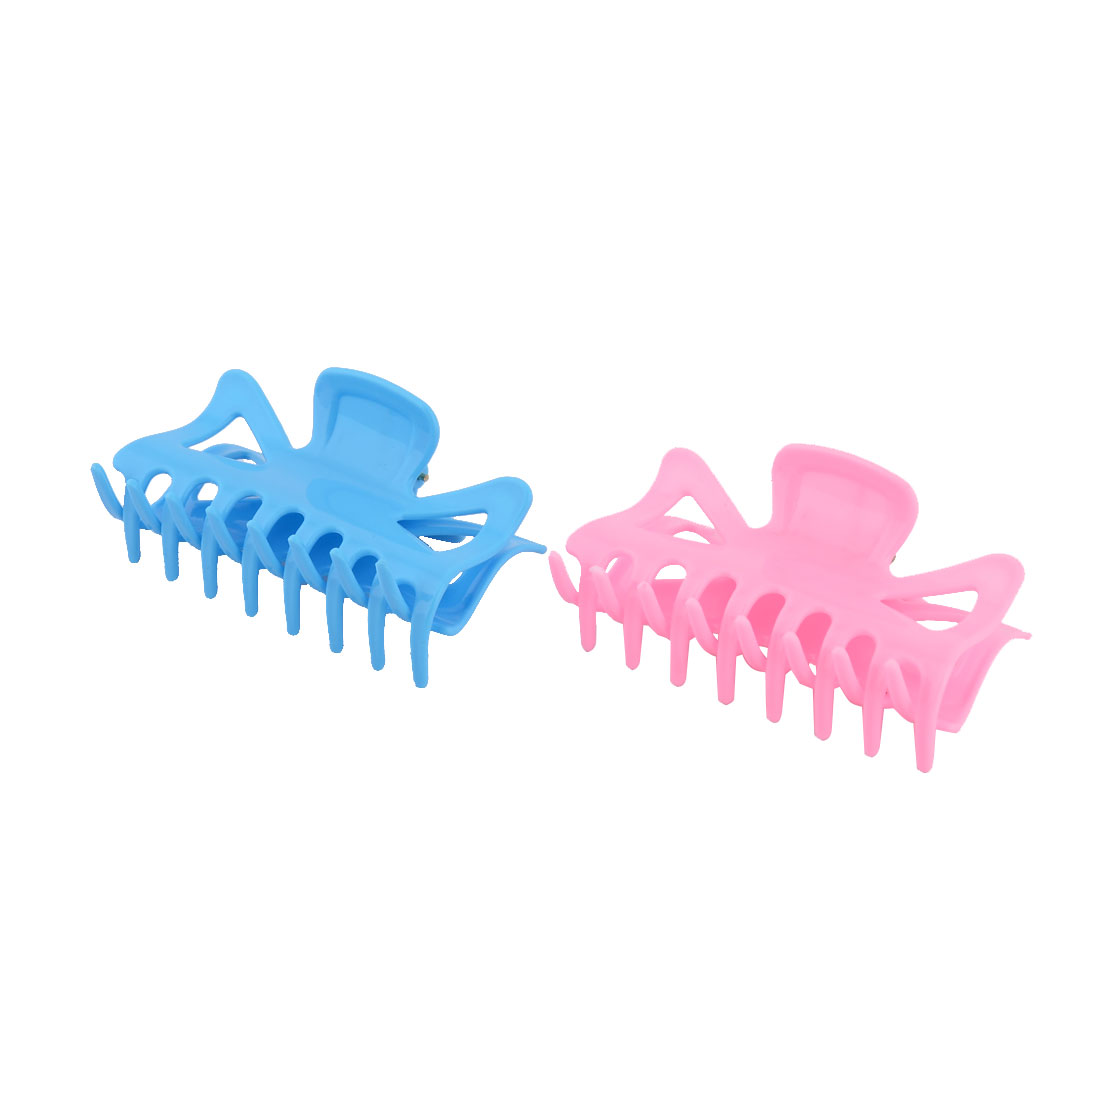 Woman Lady Plastic Hair Spring Clip Claw Clamp Ponytail Holder 2 Pcs